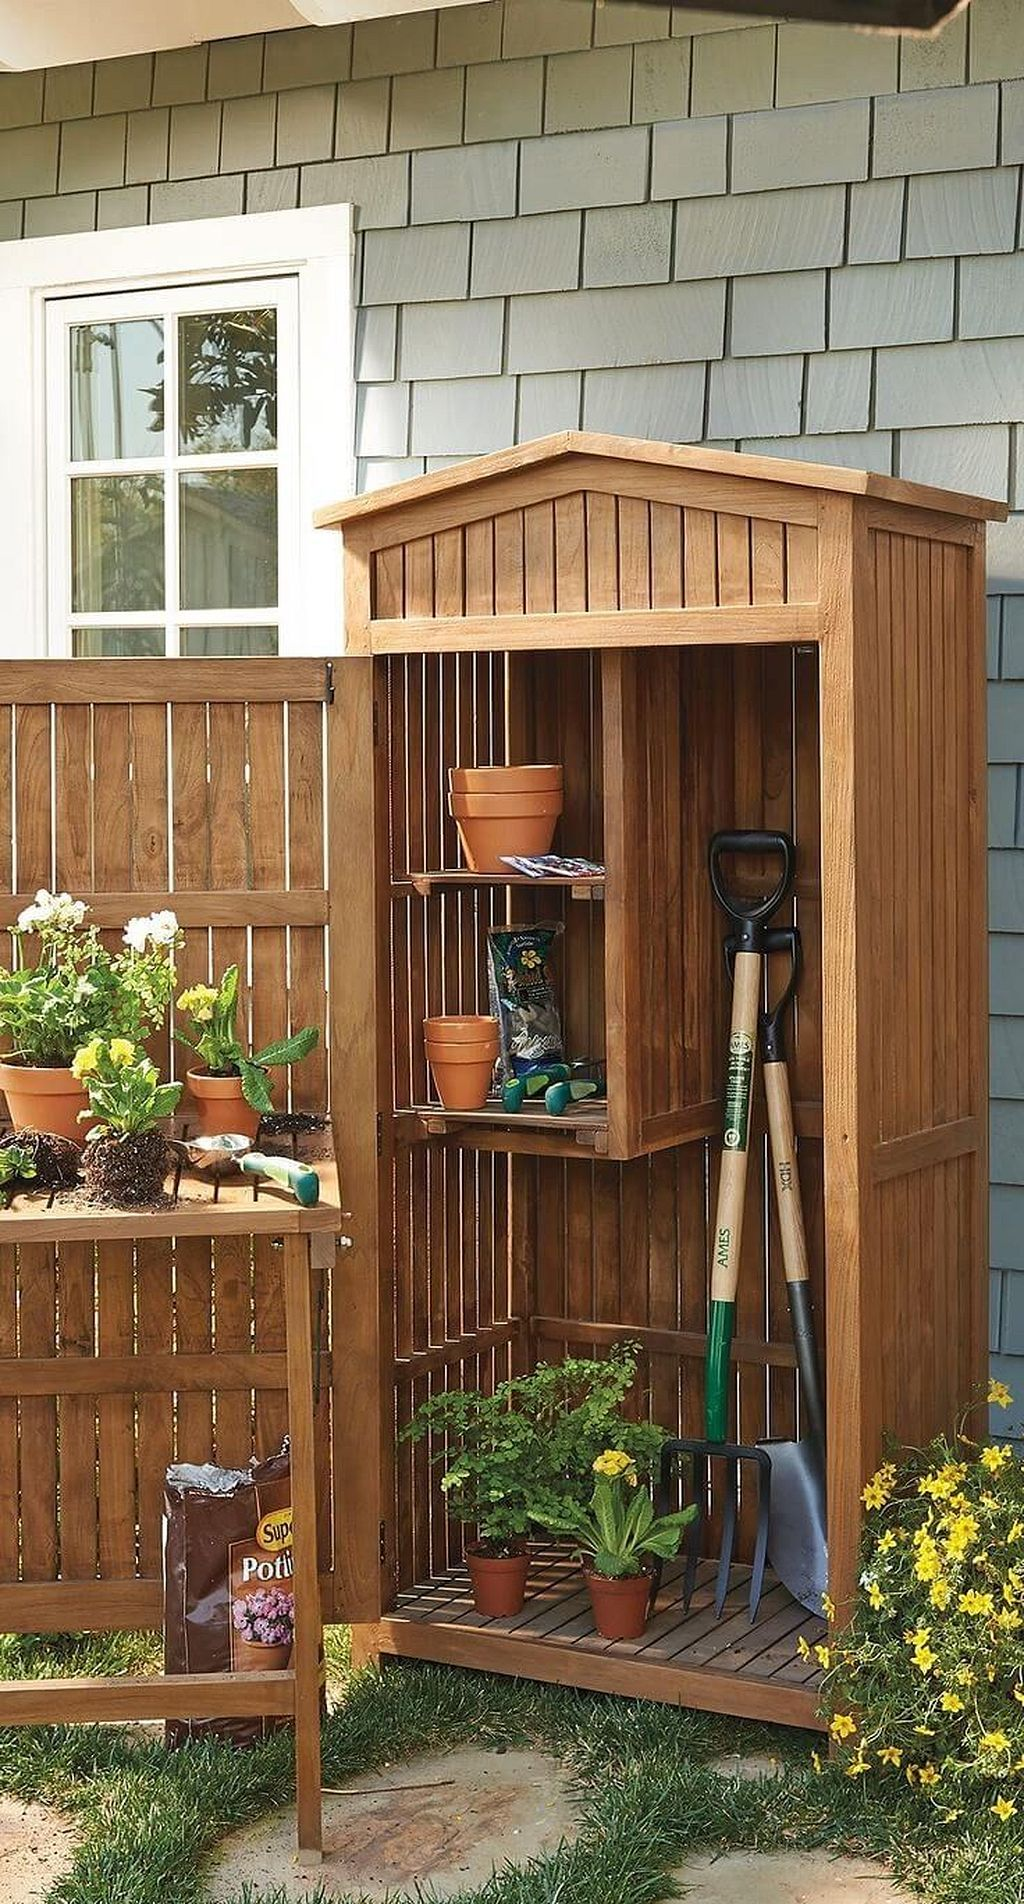 landscaping hgtv garden build tools storage how for hardscaping outdoor a design and to shed closet